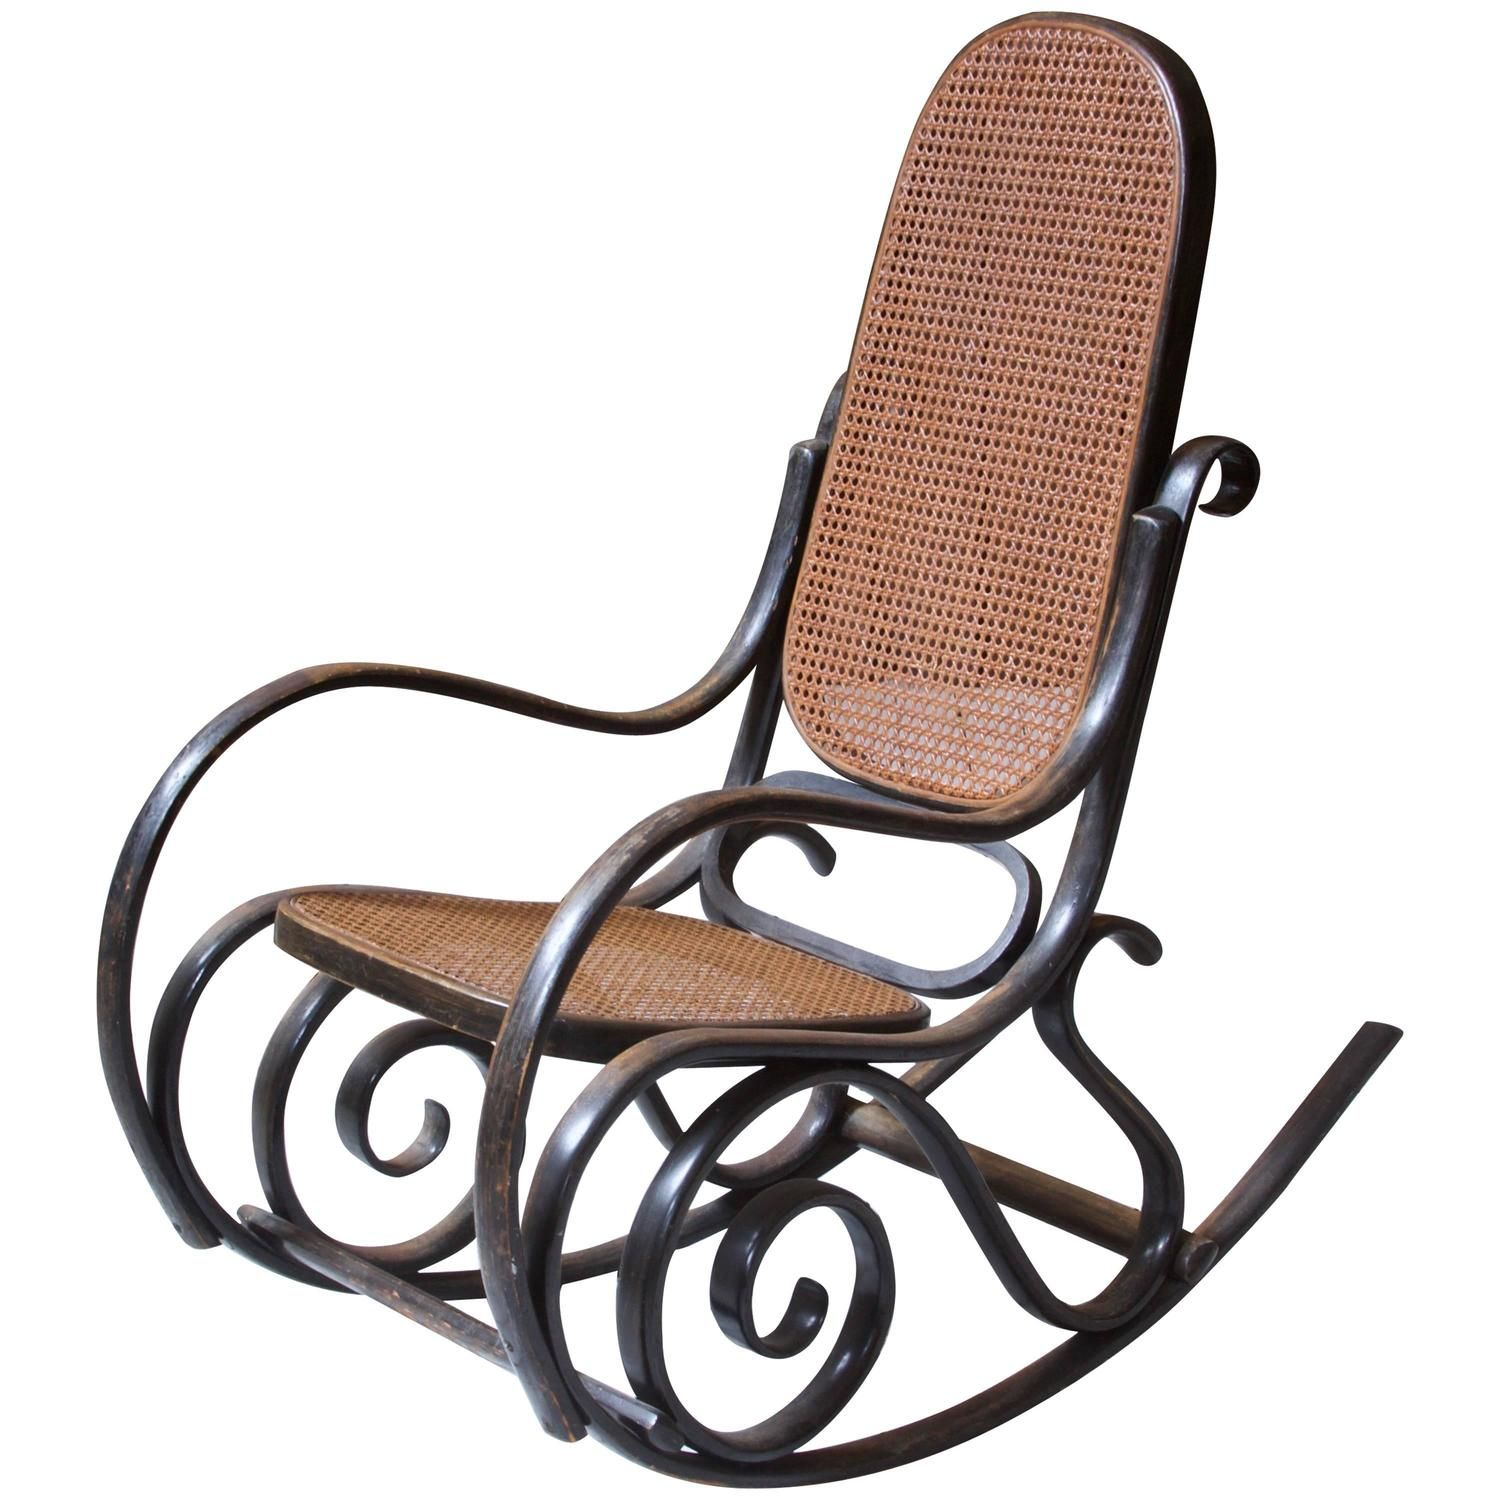 Bentwood rocking chair value - Antique Thonet Model 10 Bentwood Rocking Chair Salvatore Leone Circa 1890s Antique